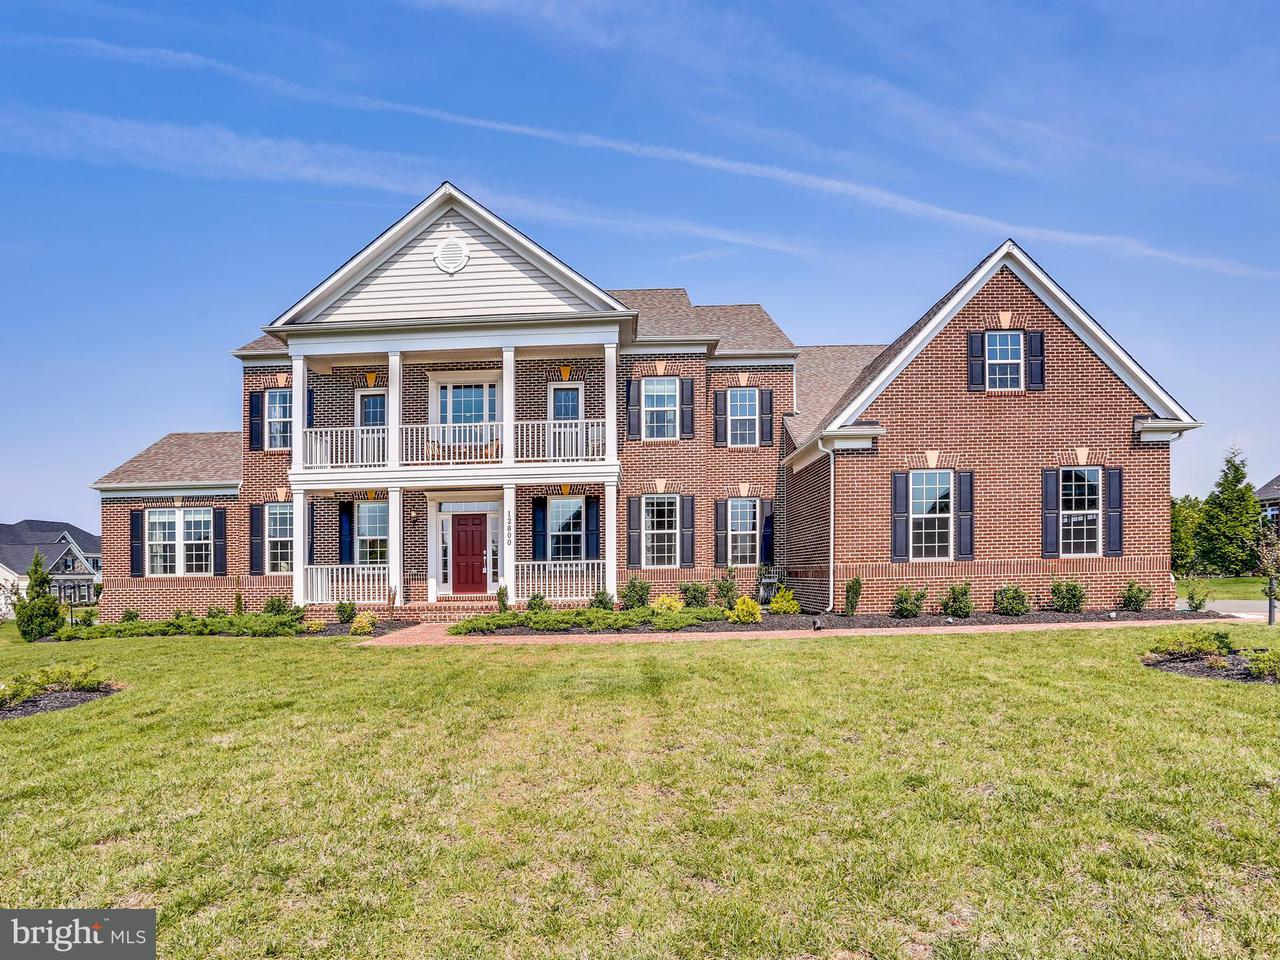 Single Family Home for Sale at 12800 GRISTMILL Lane 12800 GRISTMILL Lane Bowie, Maryland 20721 United States